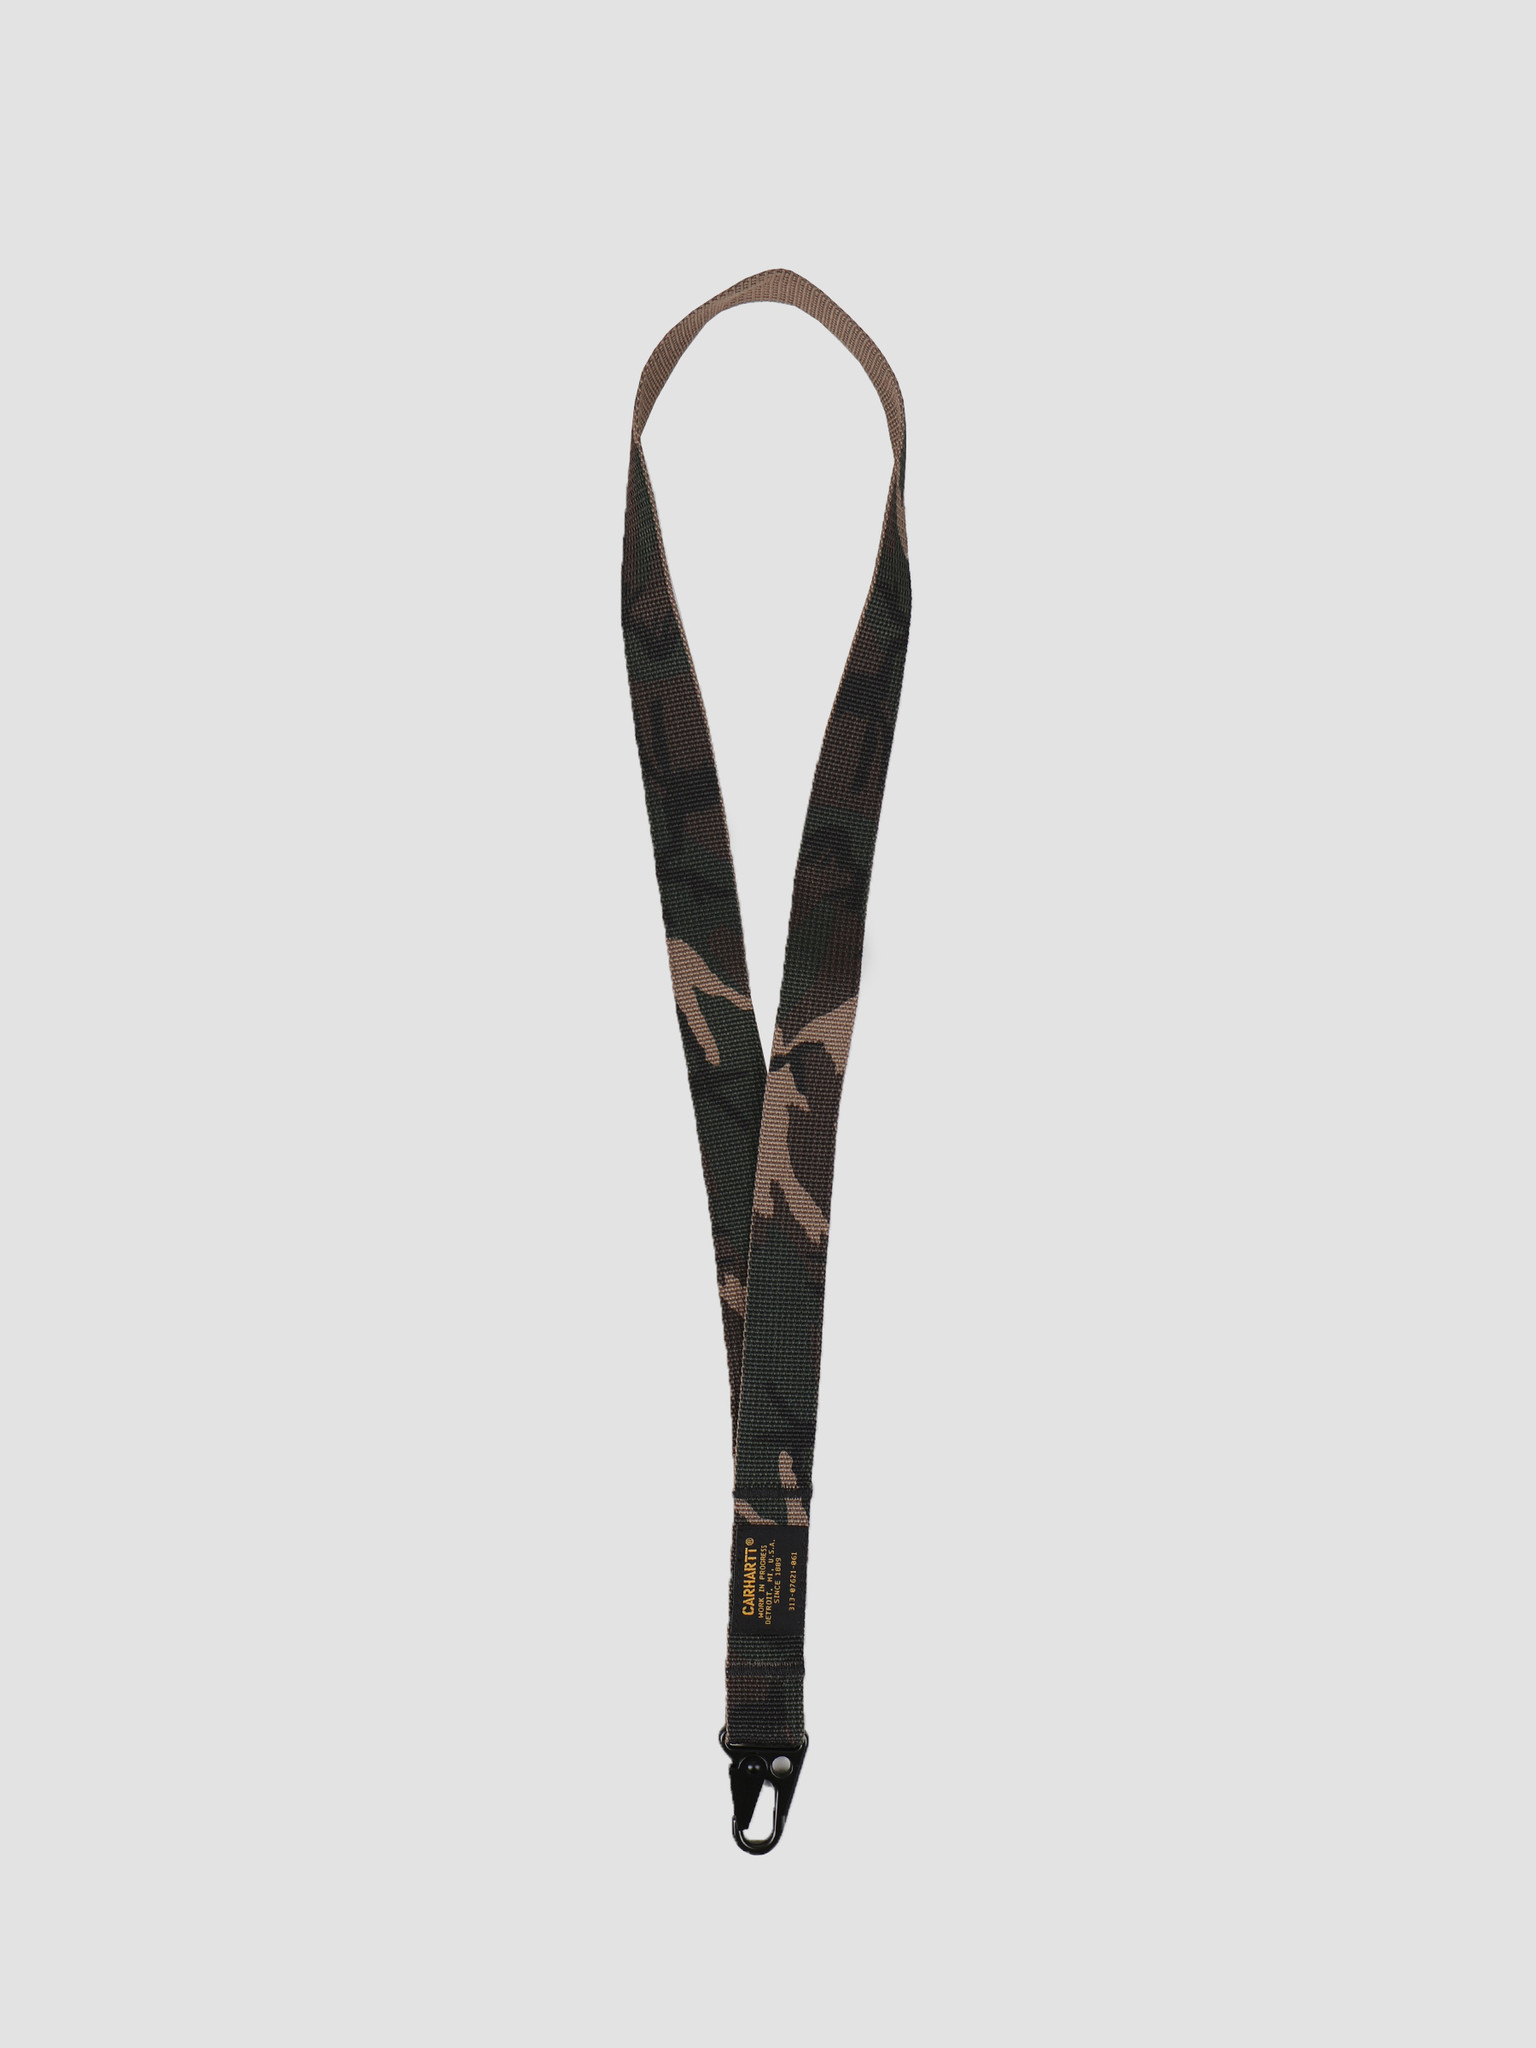 Carhartt WIP Carhartt WIP Military Key Chain Long Camo Laurel I026204